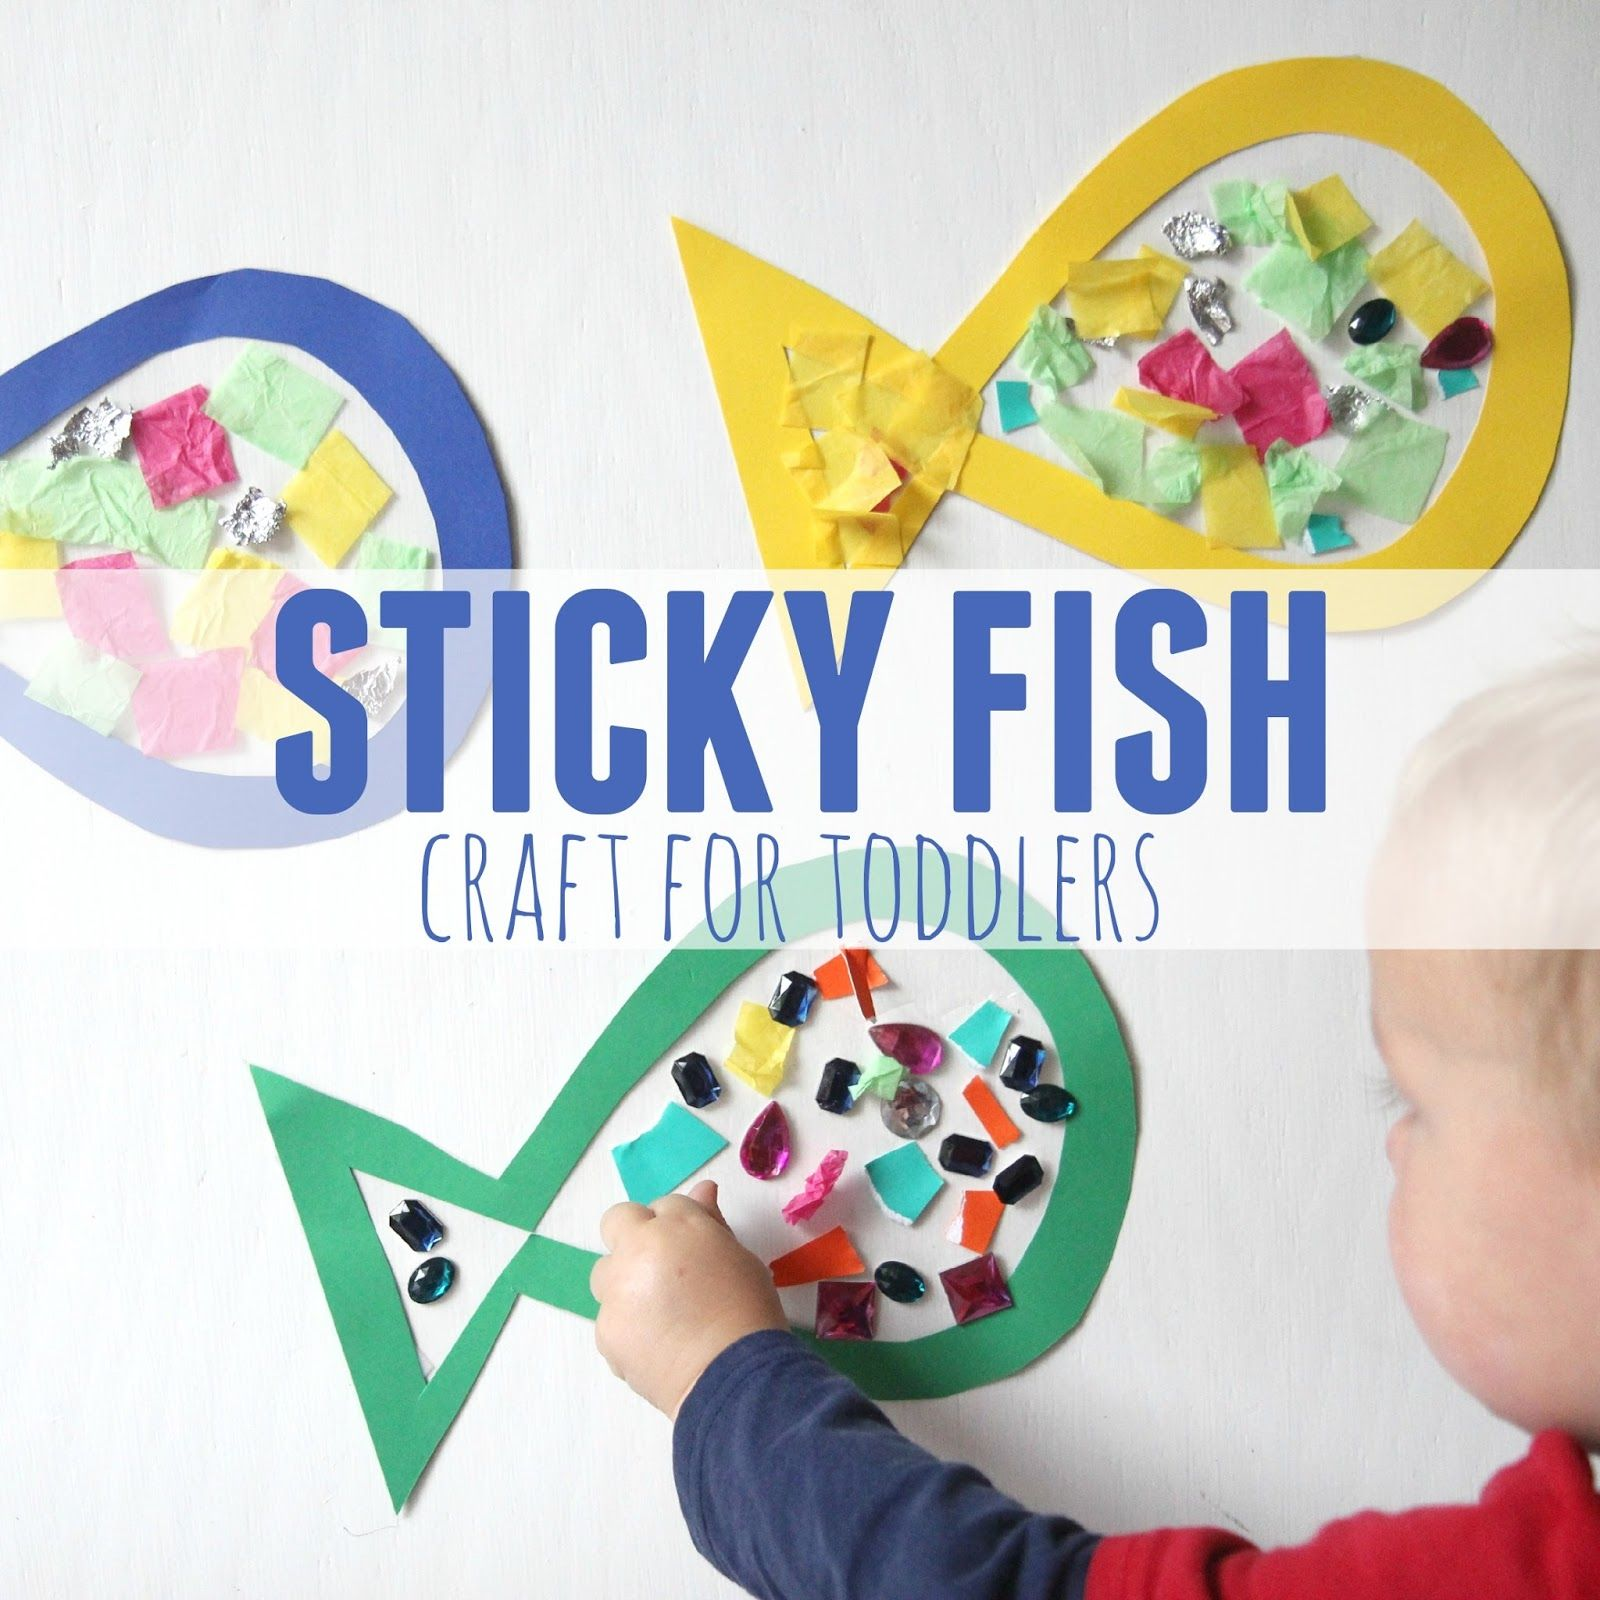 Sticky Fish Craft For Toddlers